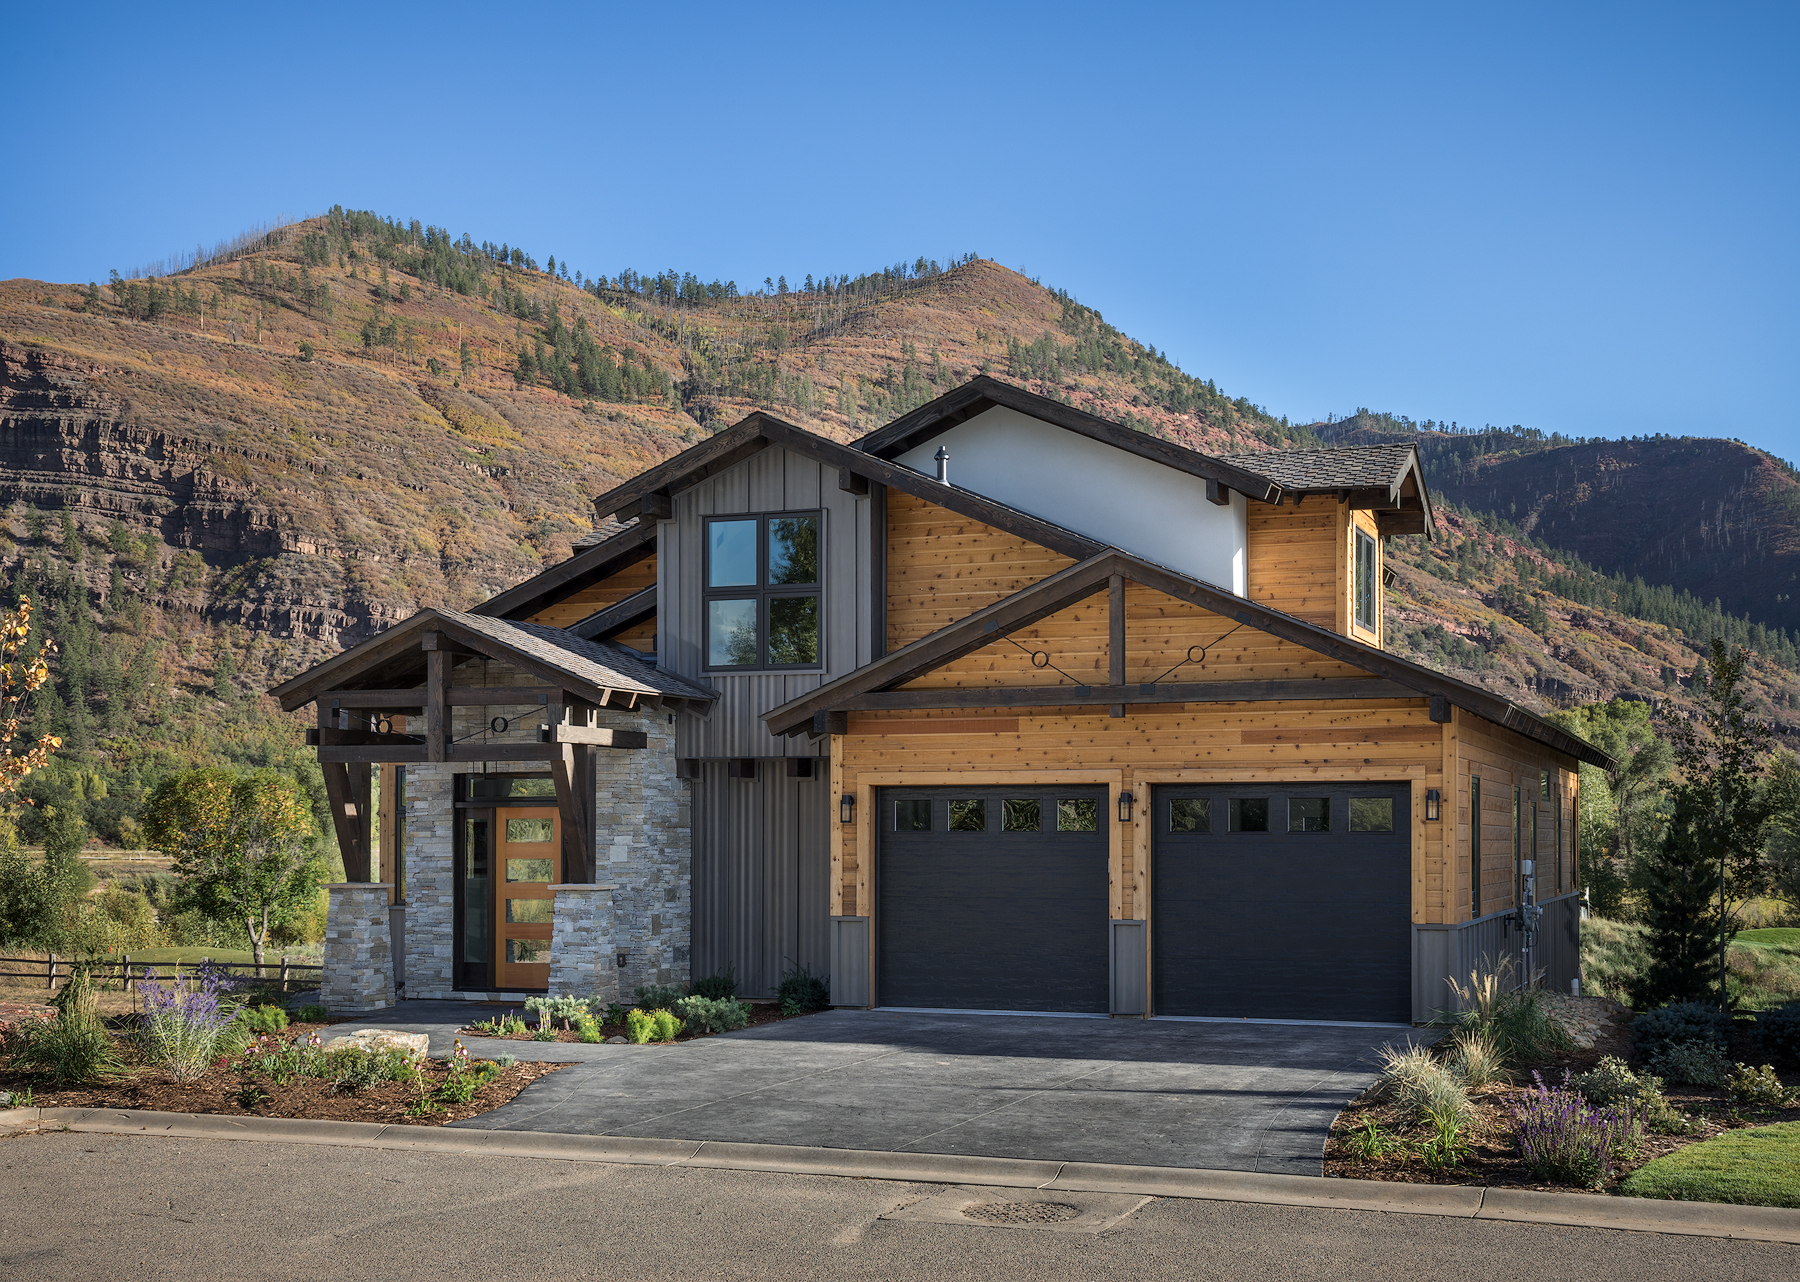 The Cove - Parade of Homes Winner  •  New Construction